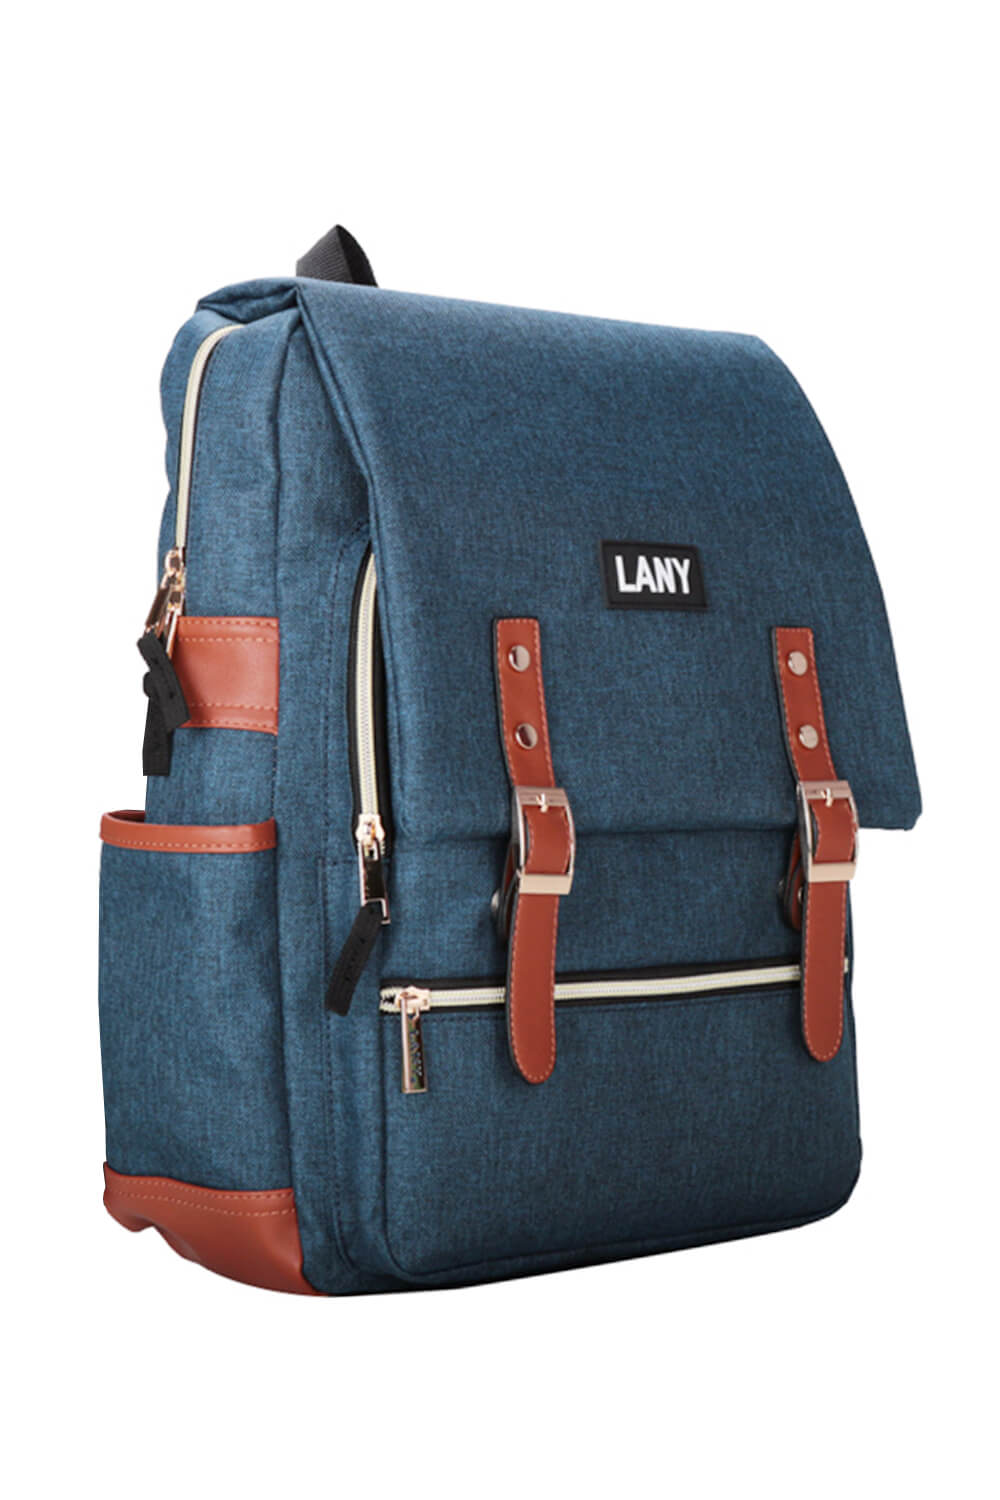 Buckle Up Backpack - LANY